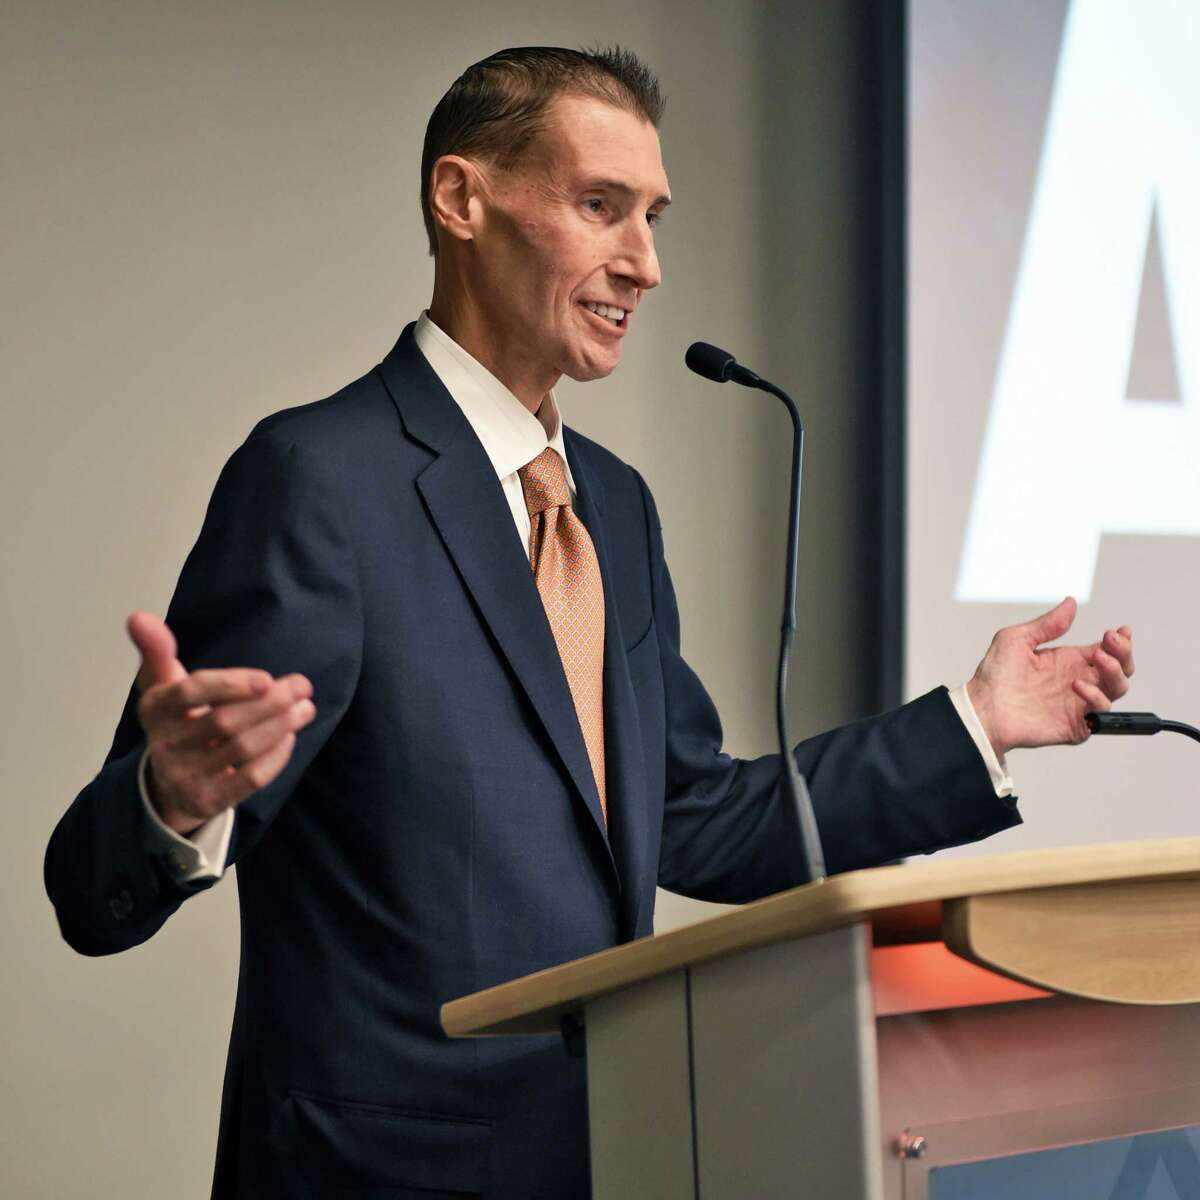 Arena Football League commissioner Scott Butera speaks during the announcement of the return of Arena Football League to Albany during a news conference at the Hearst Media Center Tuesday Oct. 24, 2017 in Colonie, NY. (John Carl D'Annibale / Times Union)